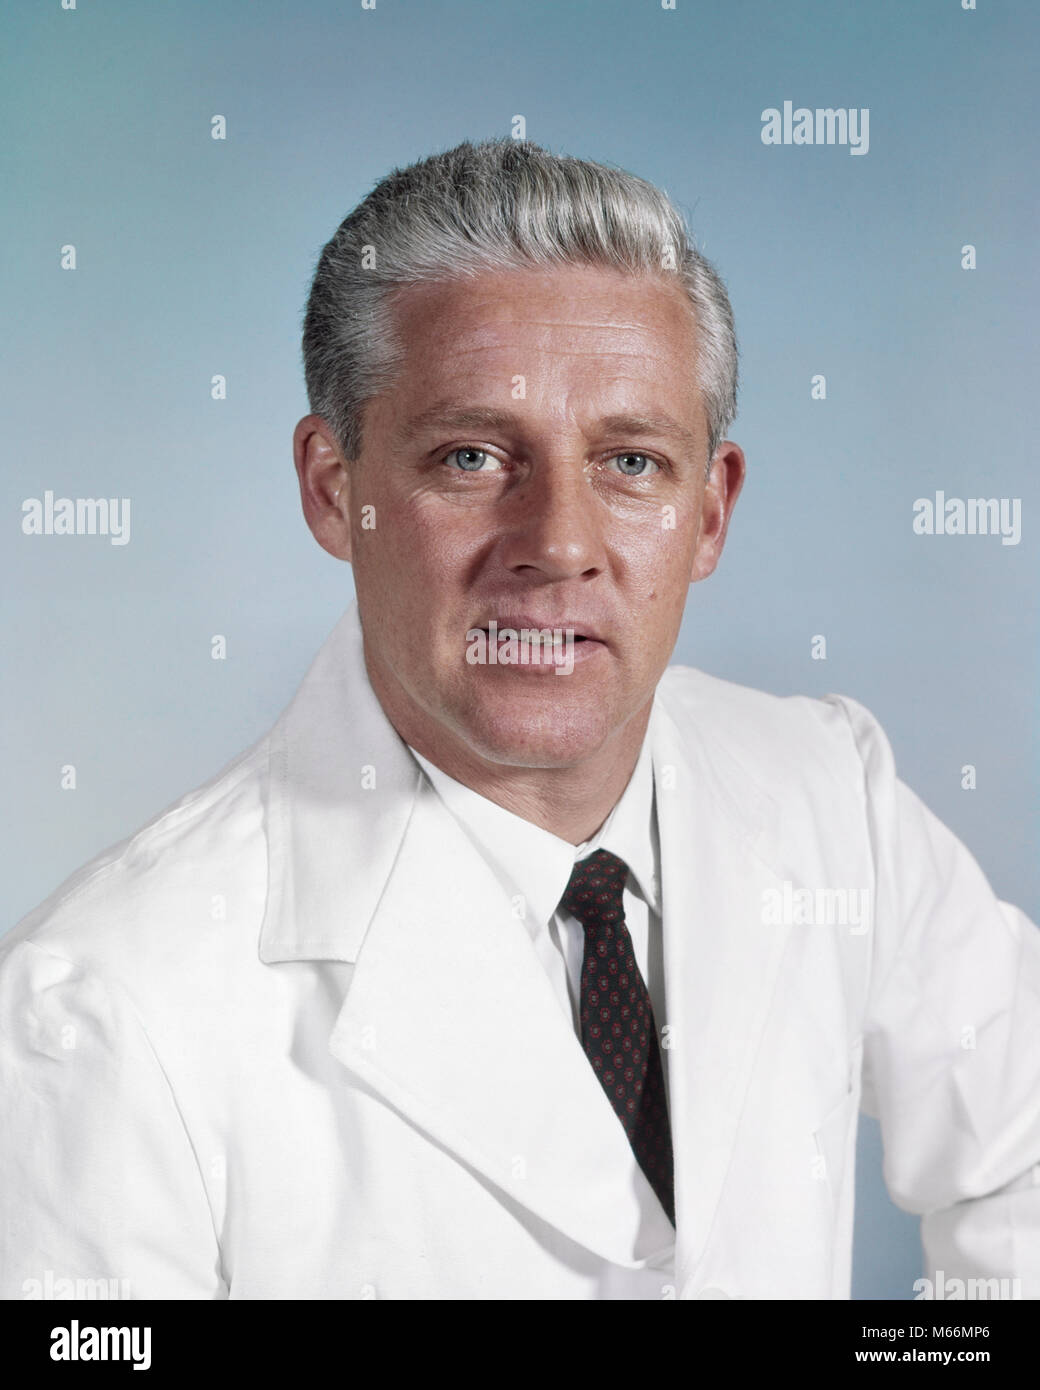 1960s PORTRAIT MIDDLE-AGED MAN GRAY HAIR WEARING WHITE LAB COAT LOOKING AT CAMERA - km501 HAR001 HARS NOSTALGIA - Stock Image